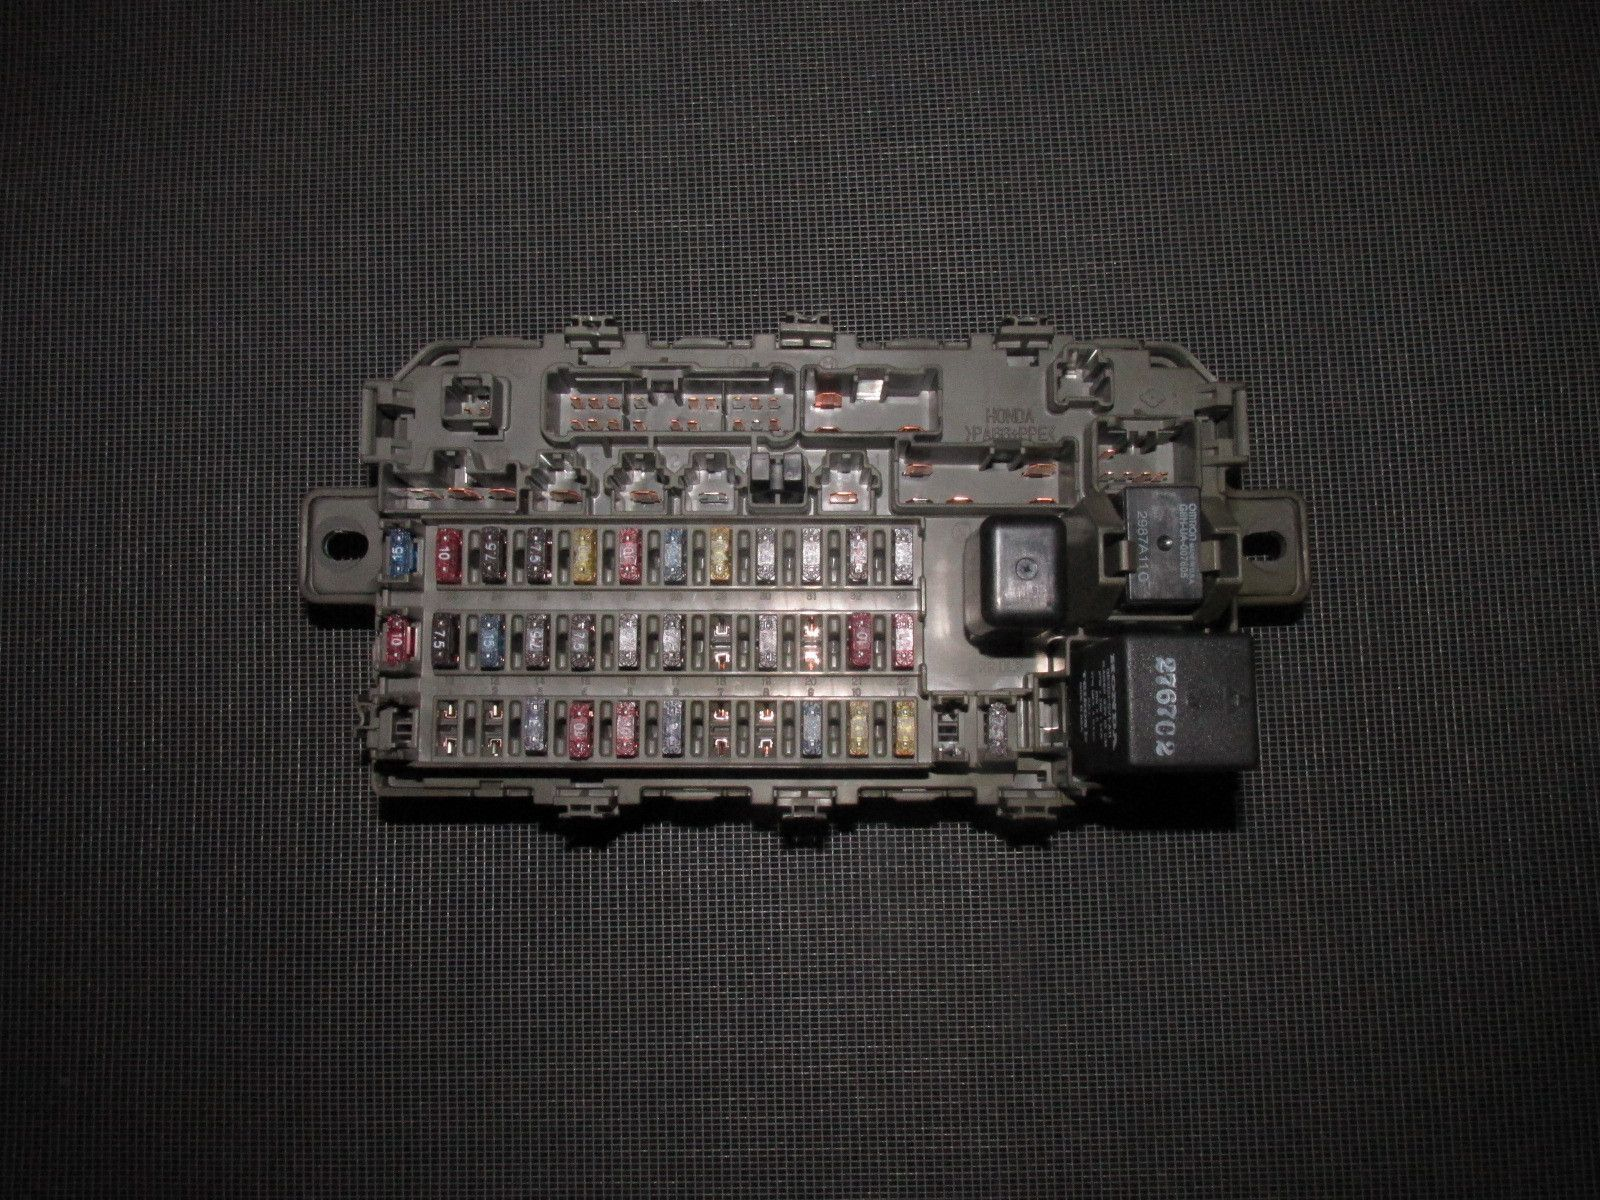 ... 96 97 98 99 00 honda civic oem interior fuse box pinterest honda 96 honda  civic